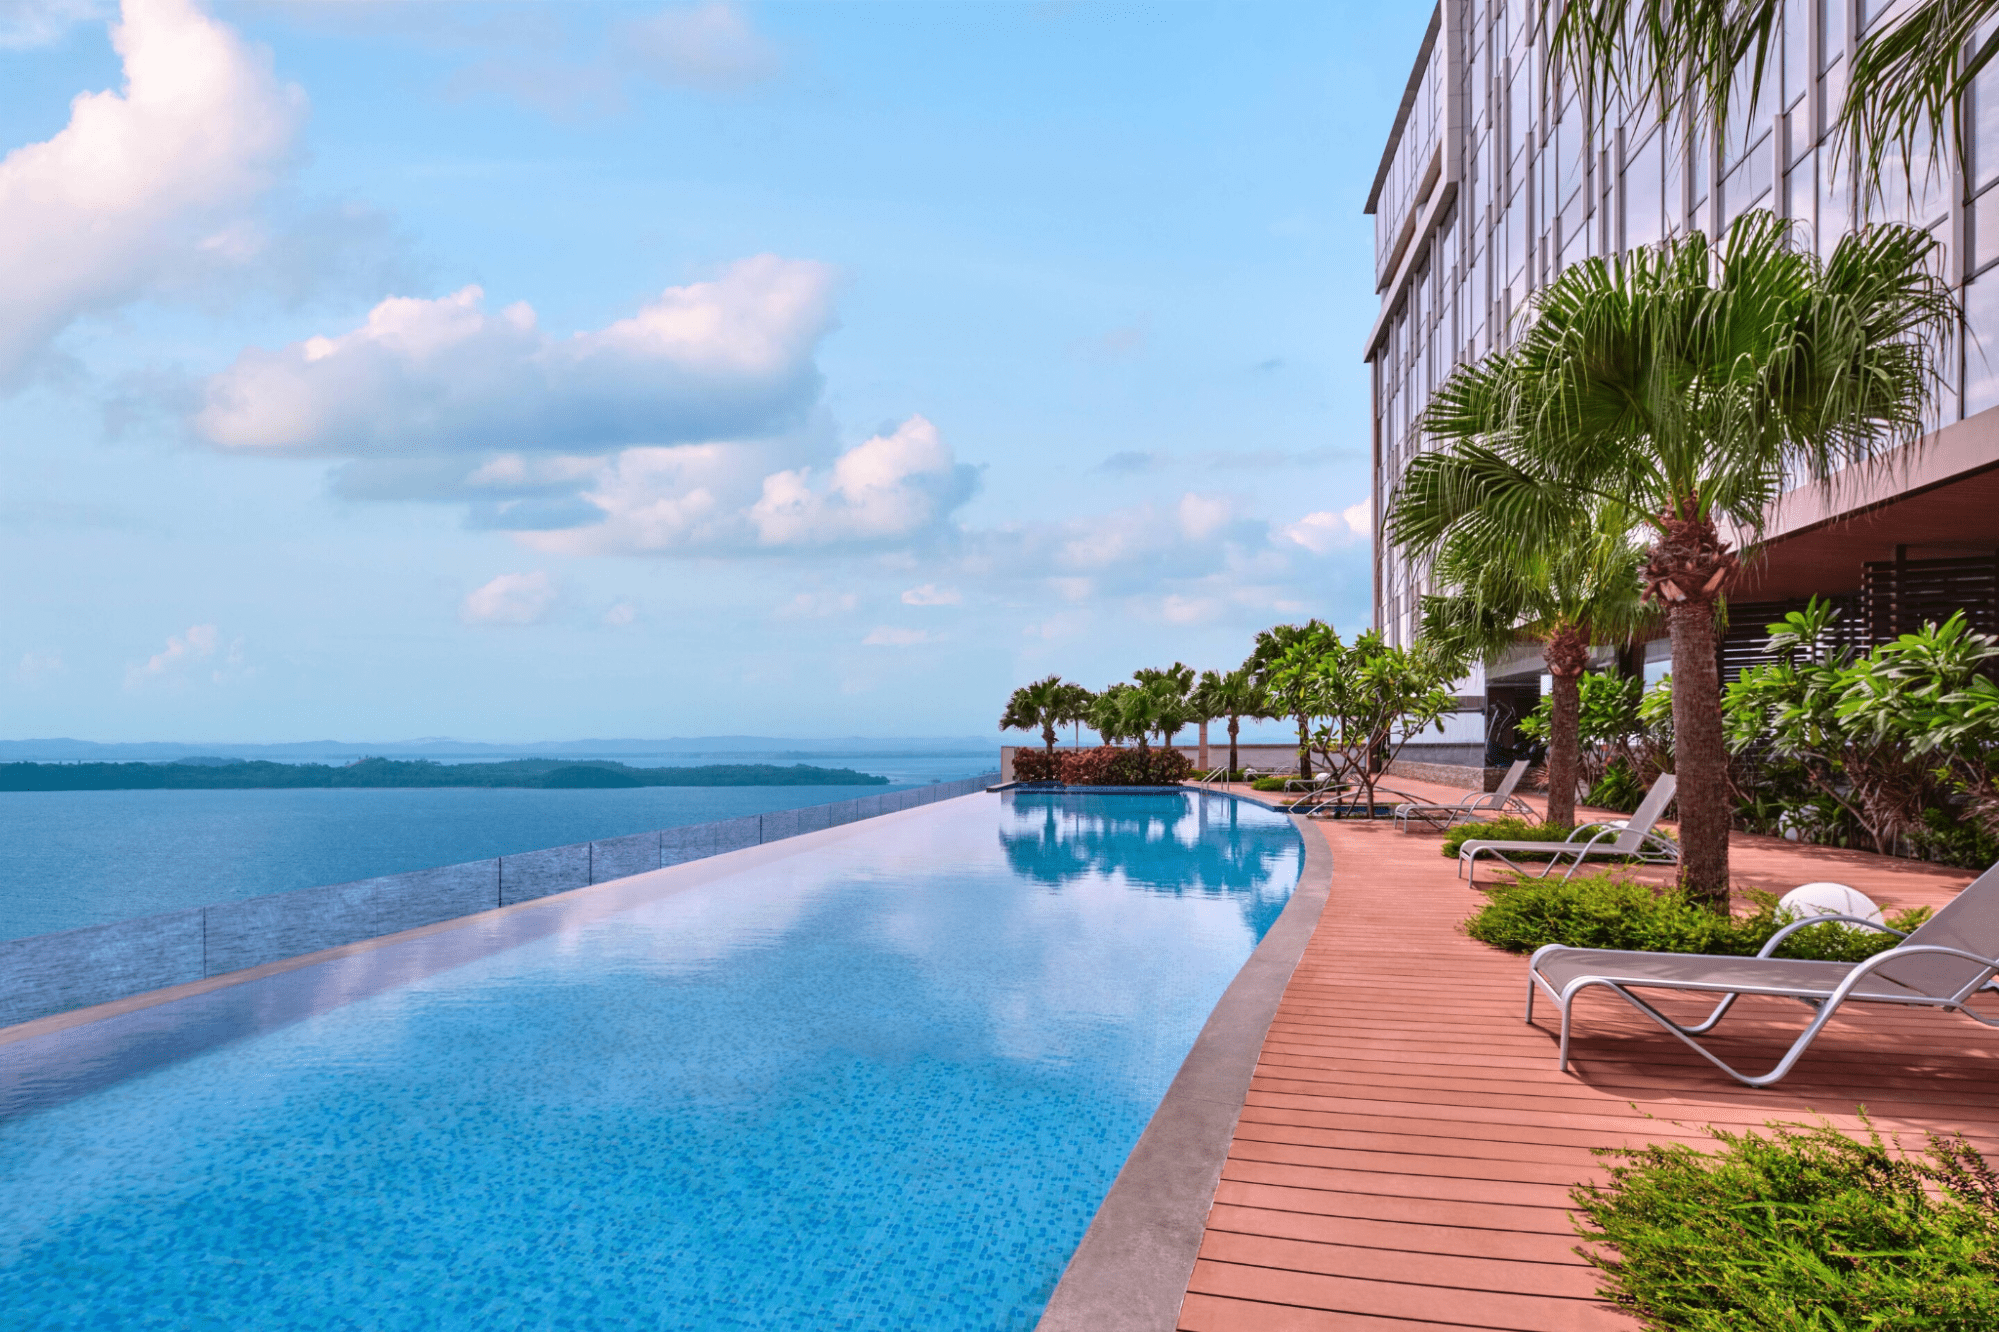 Marriott - new hotels and resorts near singapore